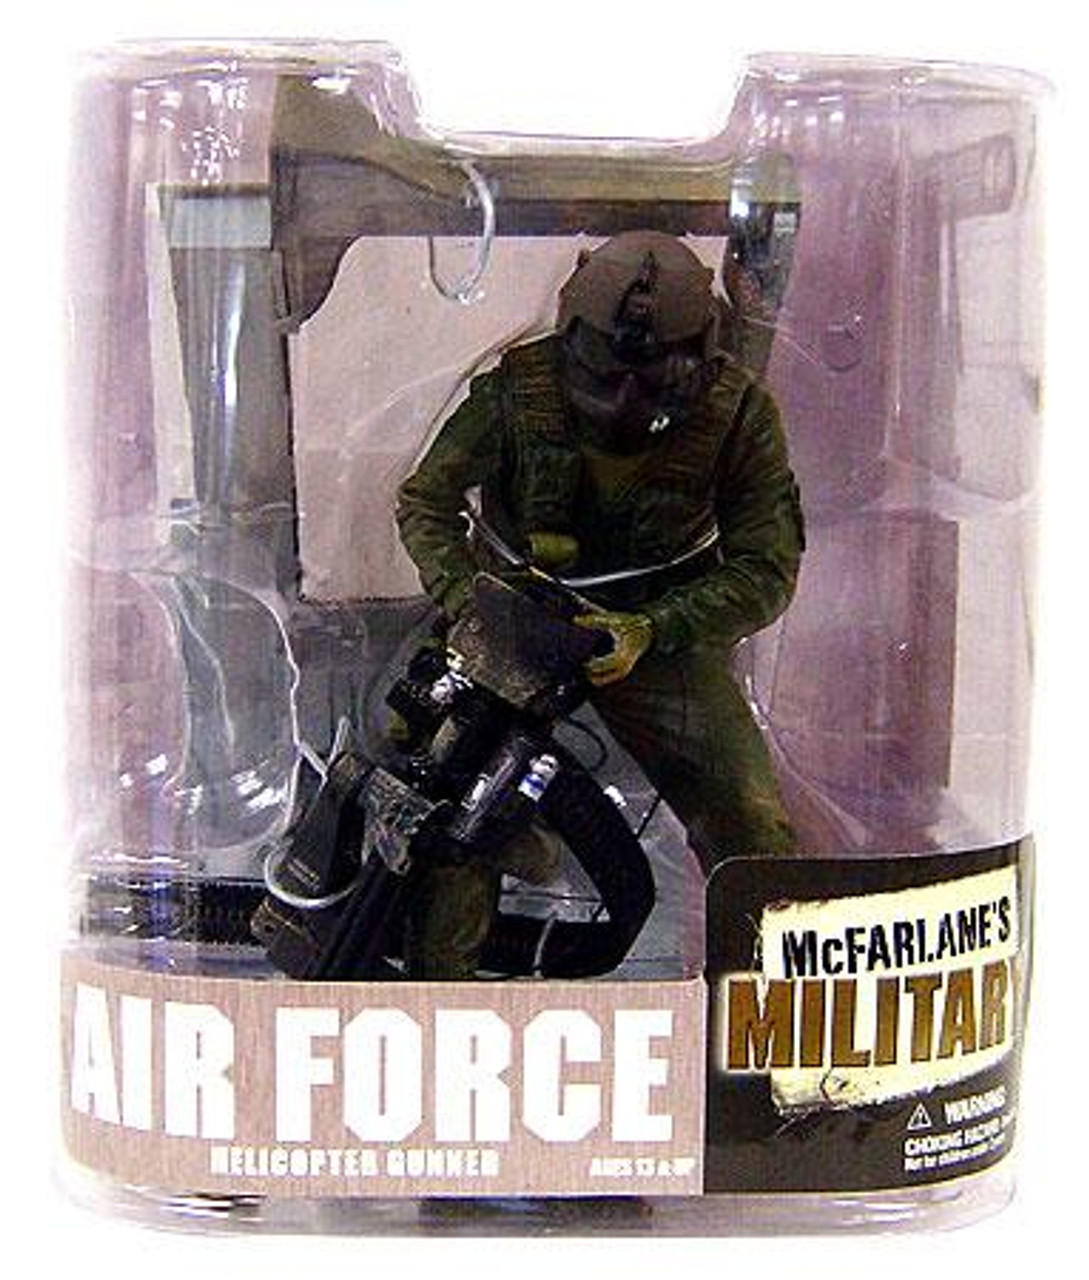 McFarlane Toys Military Series 6 Air Force Helicopter Gunner Action Figure [Random Ethnicity]